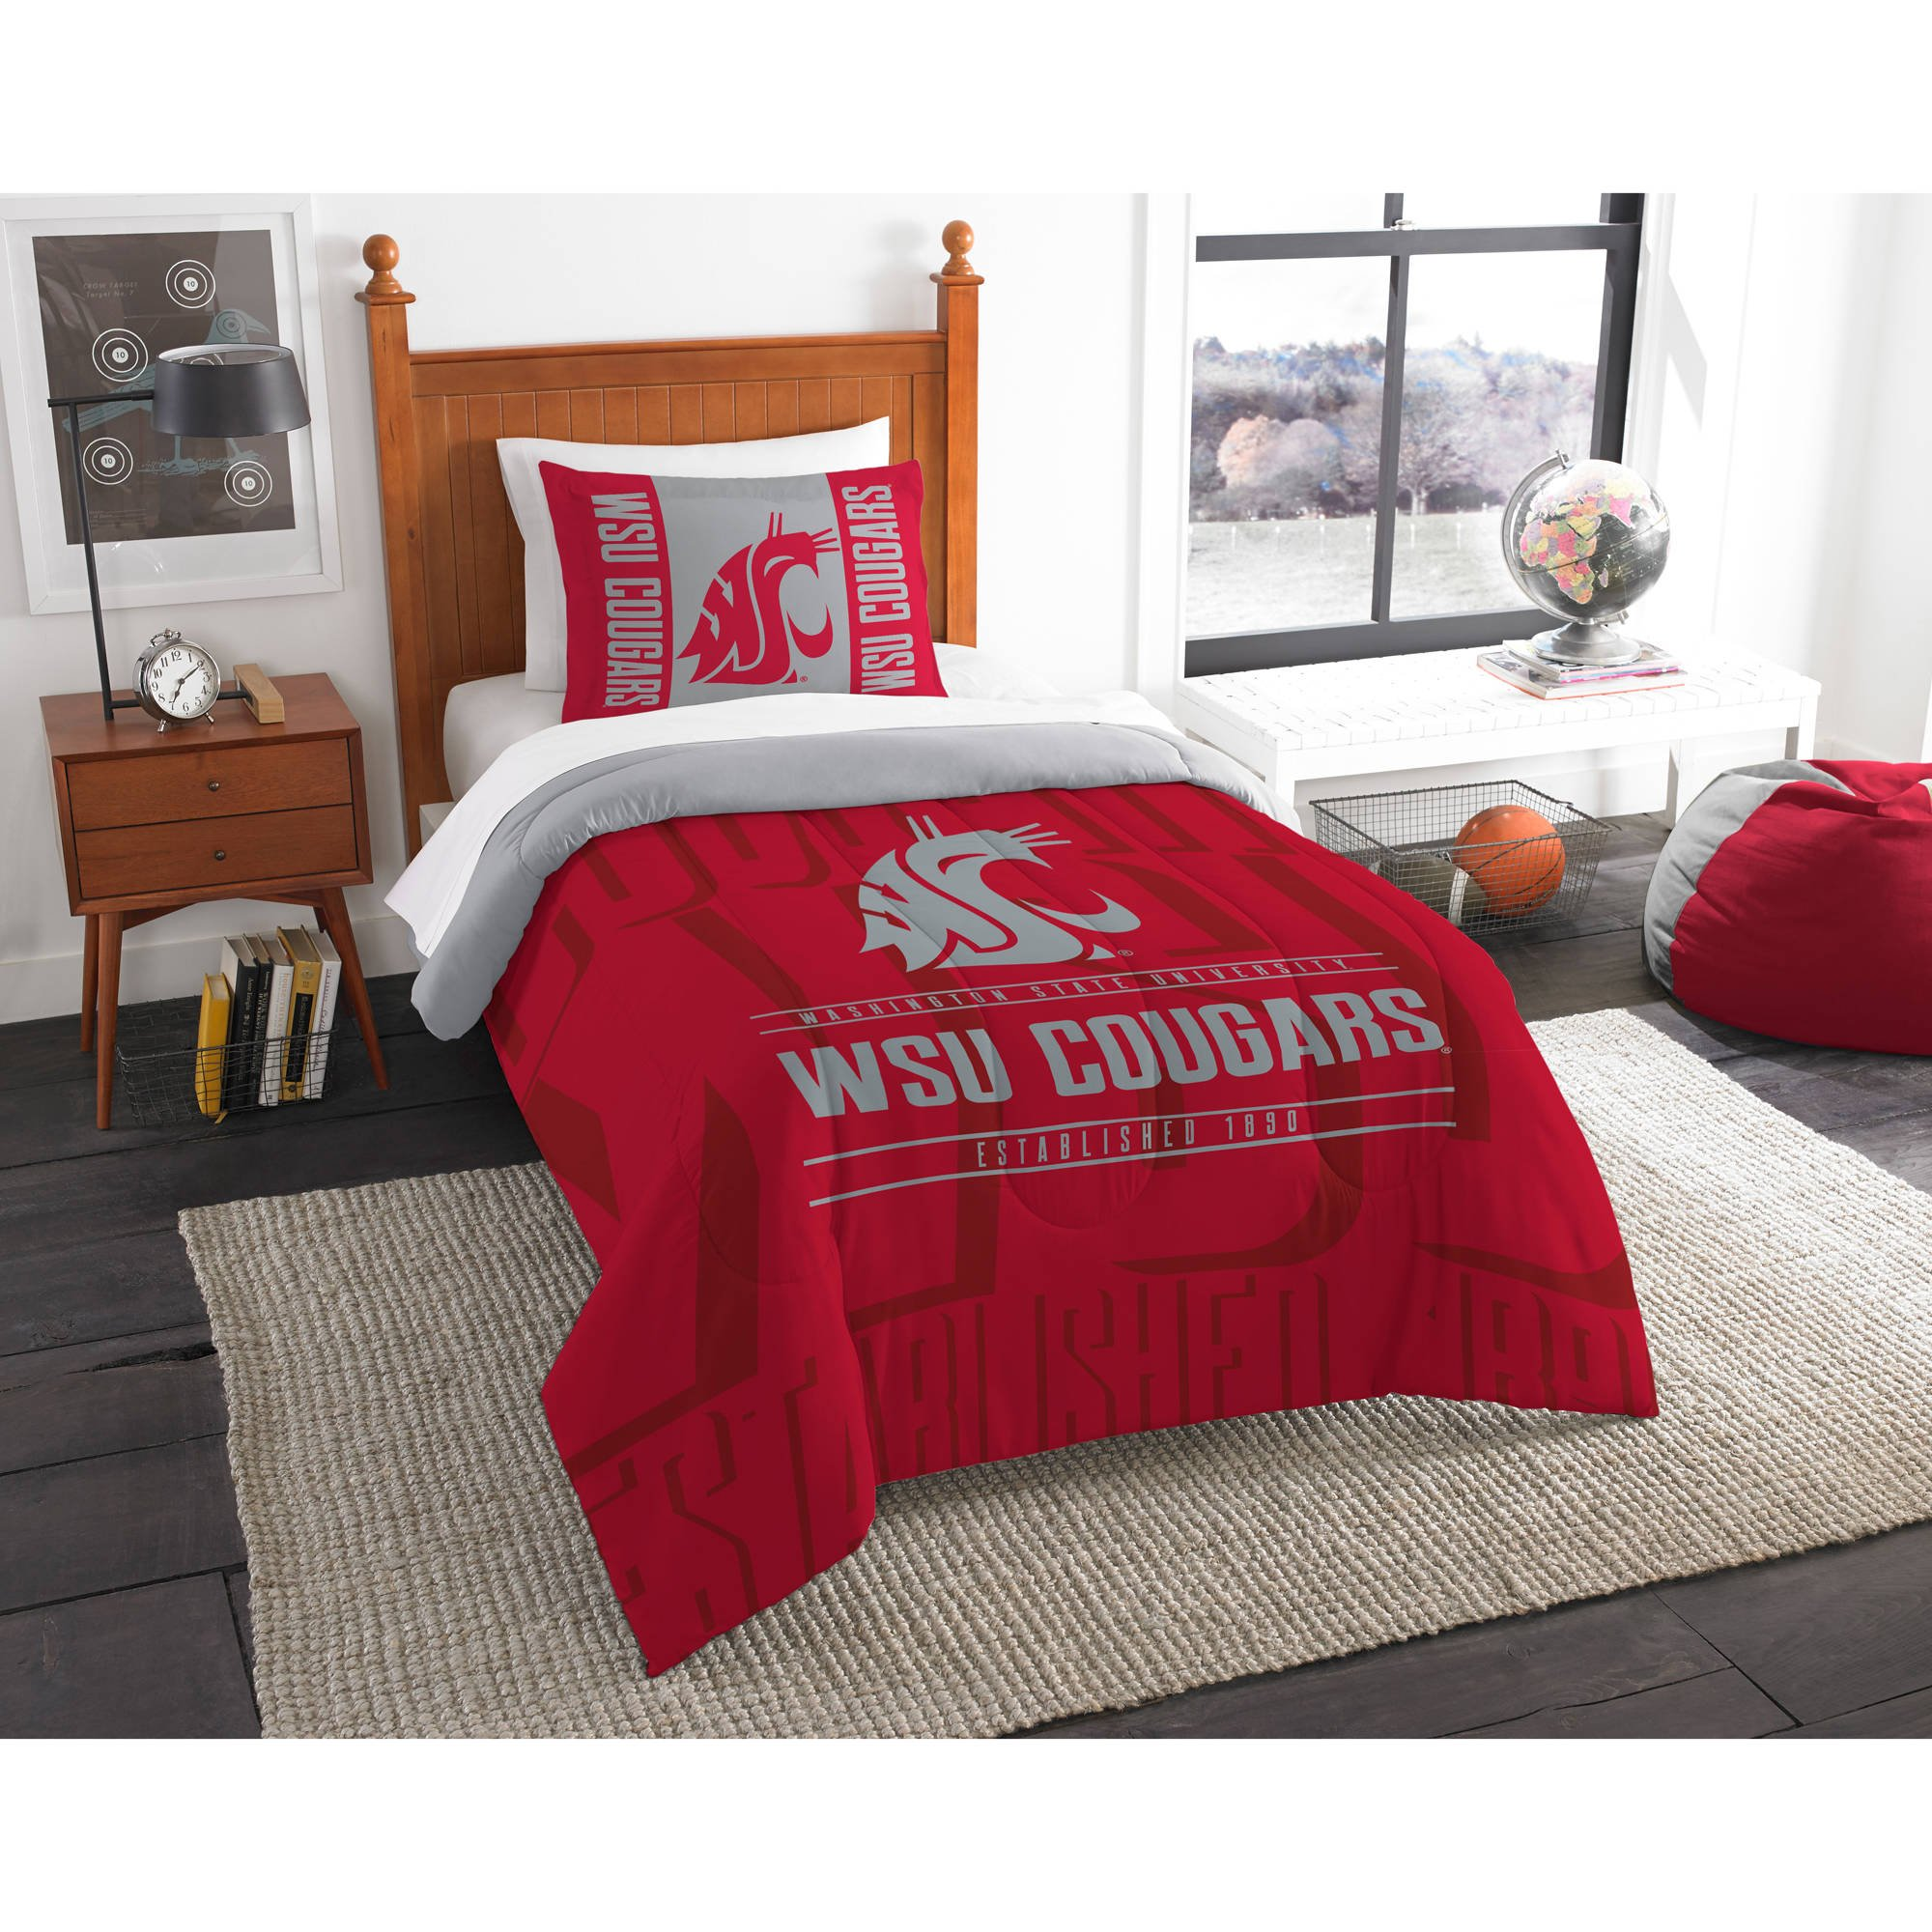 2 Piece NCAA Cougars Comforter Twin Set, Red Grey Multi Sports Patterned, College Football Themed Bedding, Team Logo Fan Merchandise Athletic Team Spirit Fan, Polyester, For Unisex